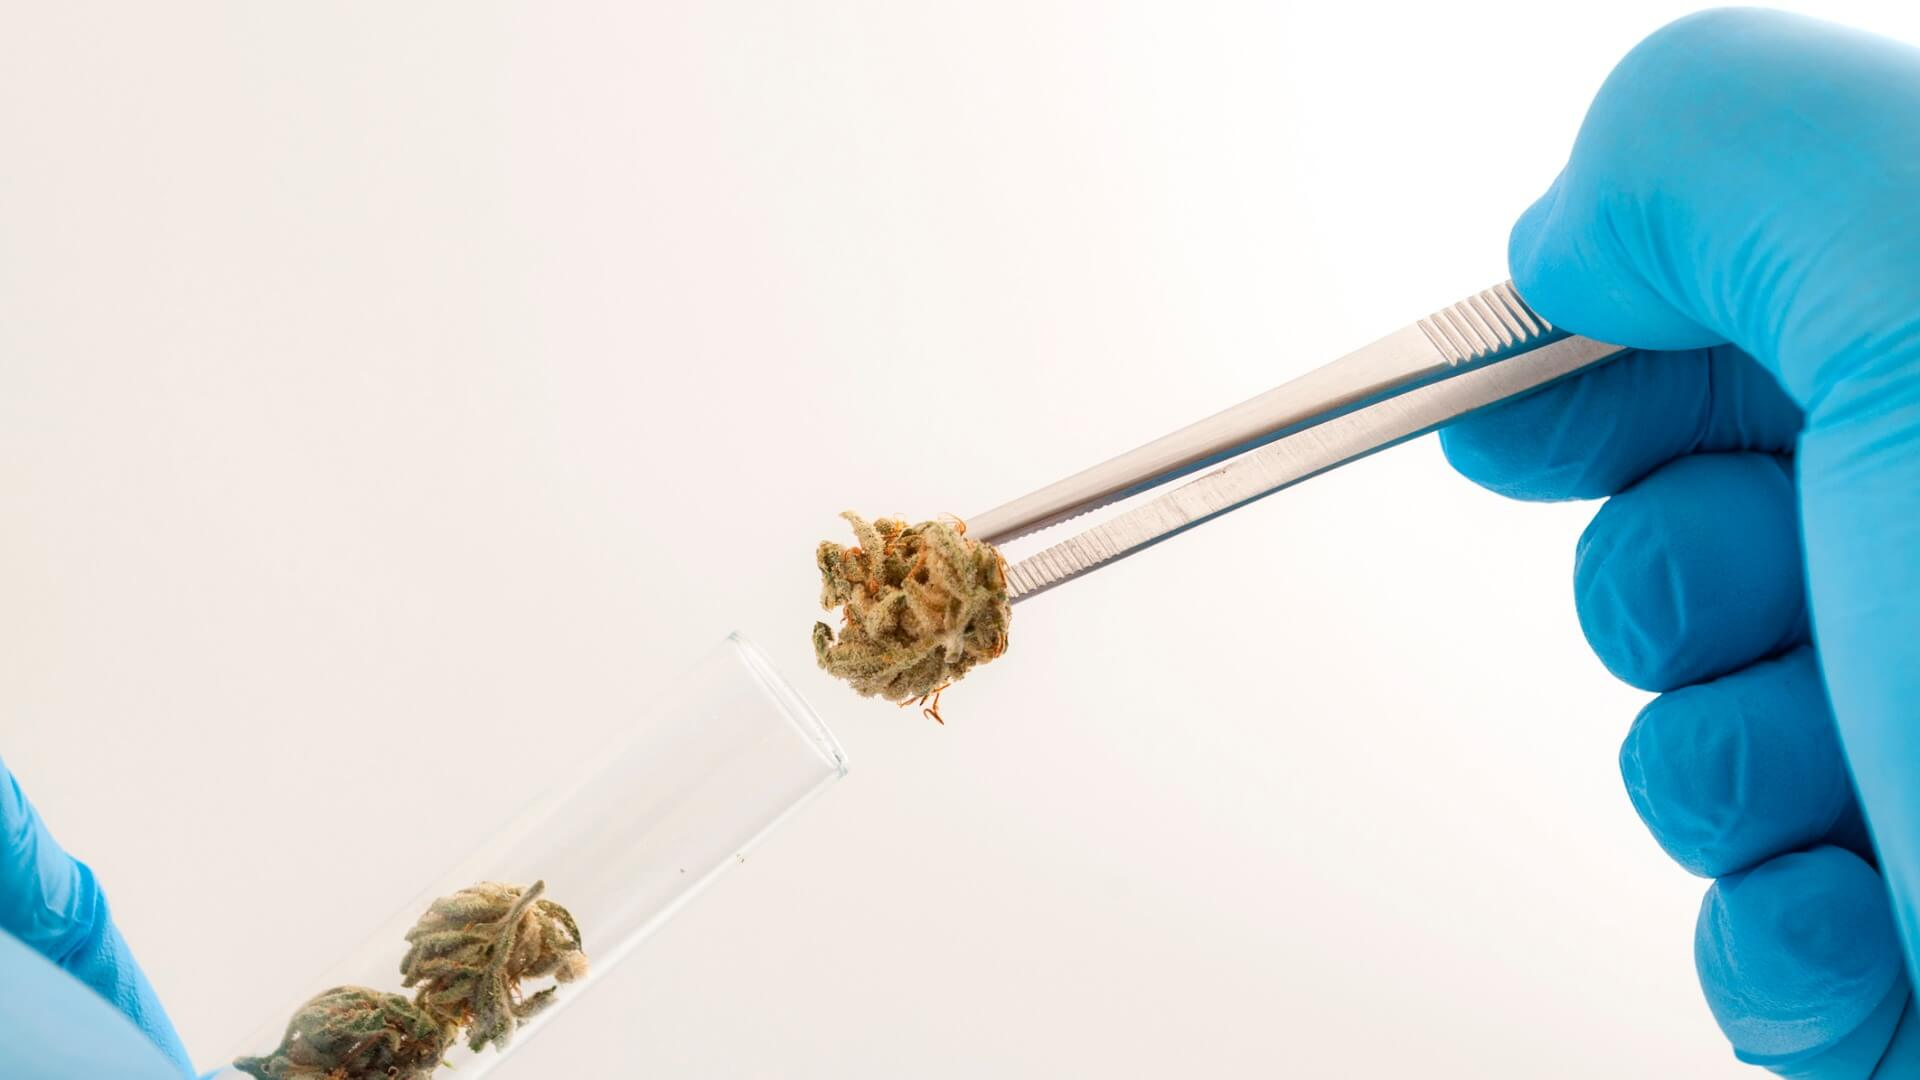 A researcher putting cannabis nugs into a test tube